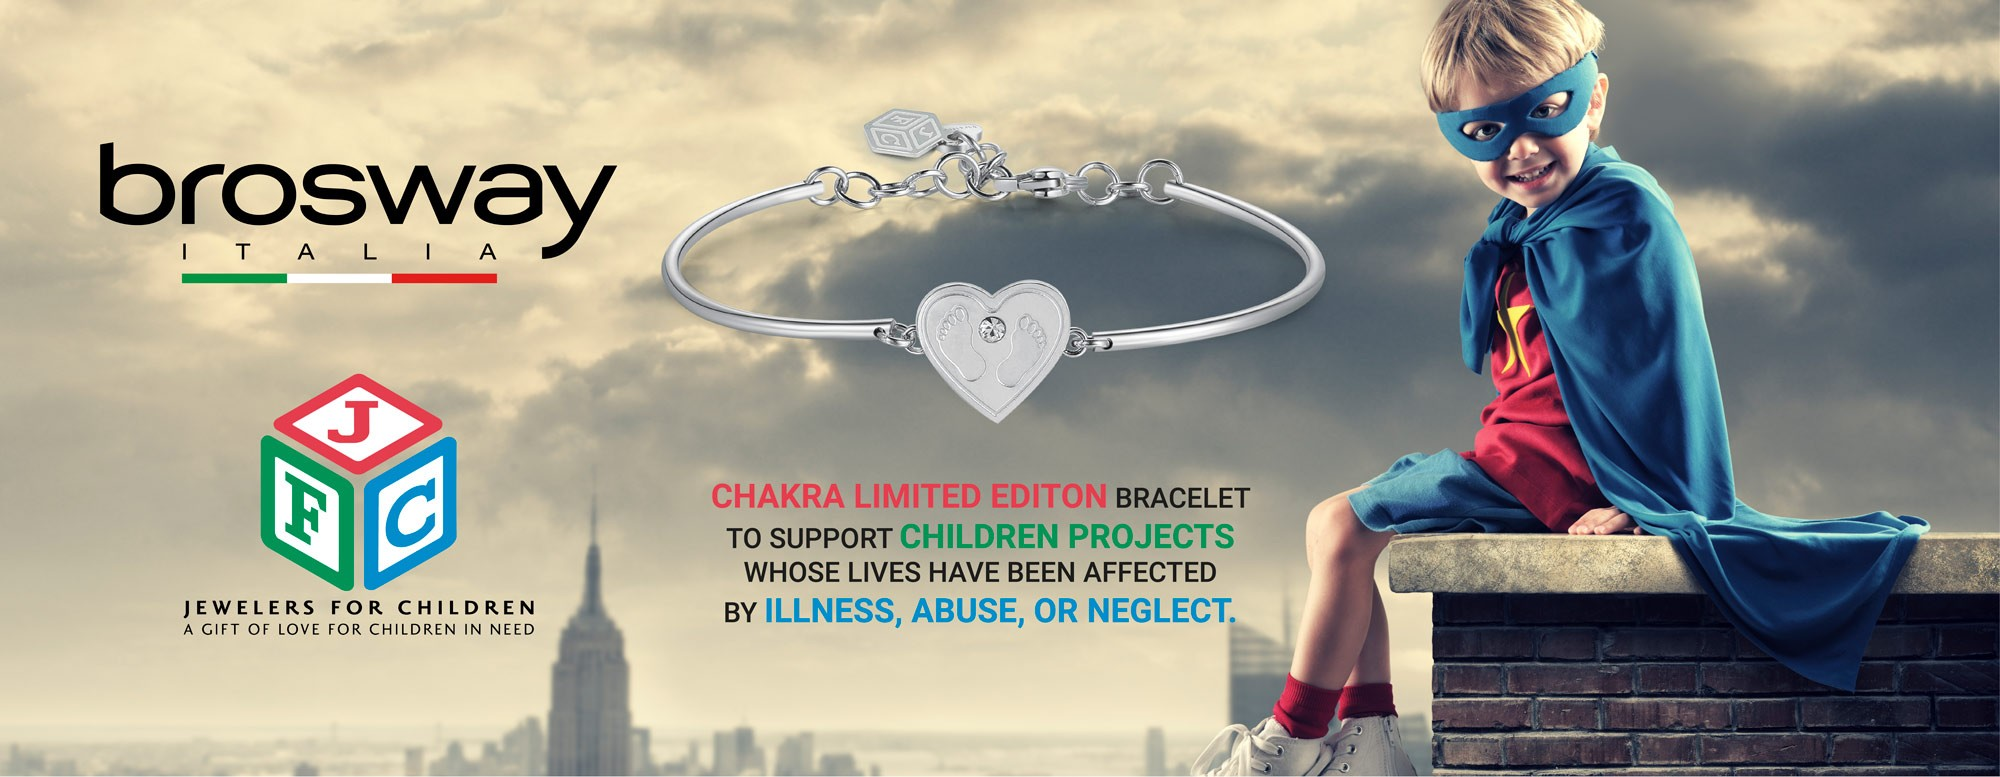 promo bracelet charity jewelers for children